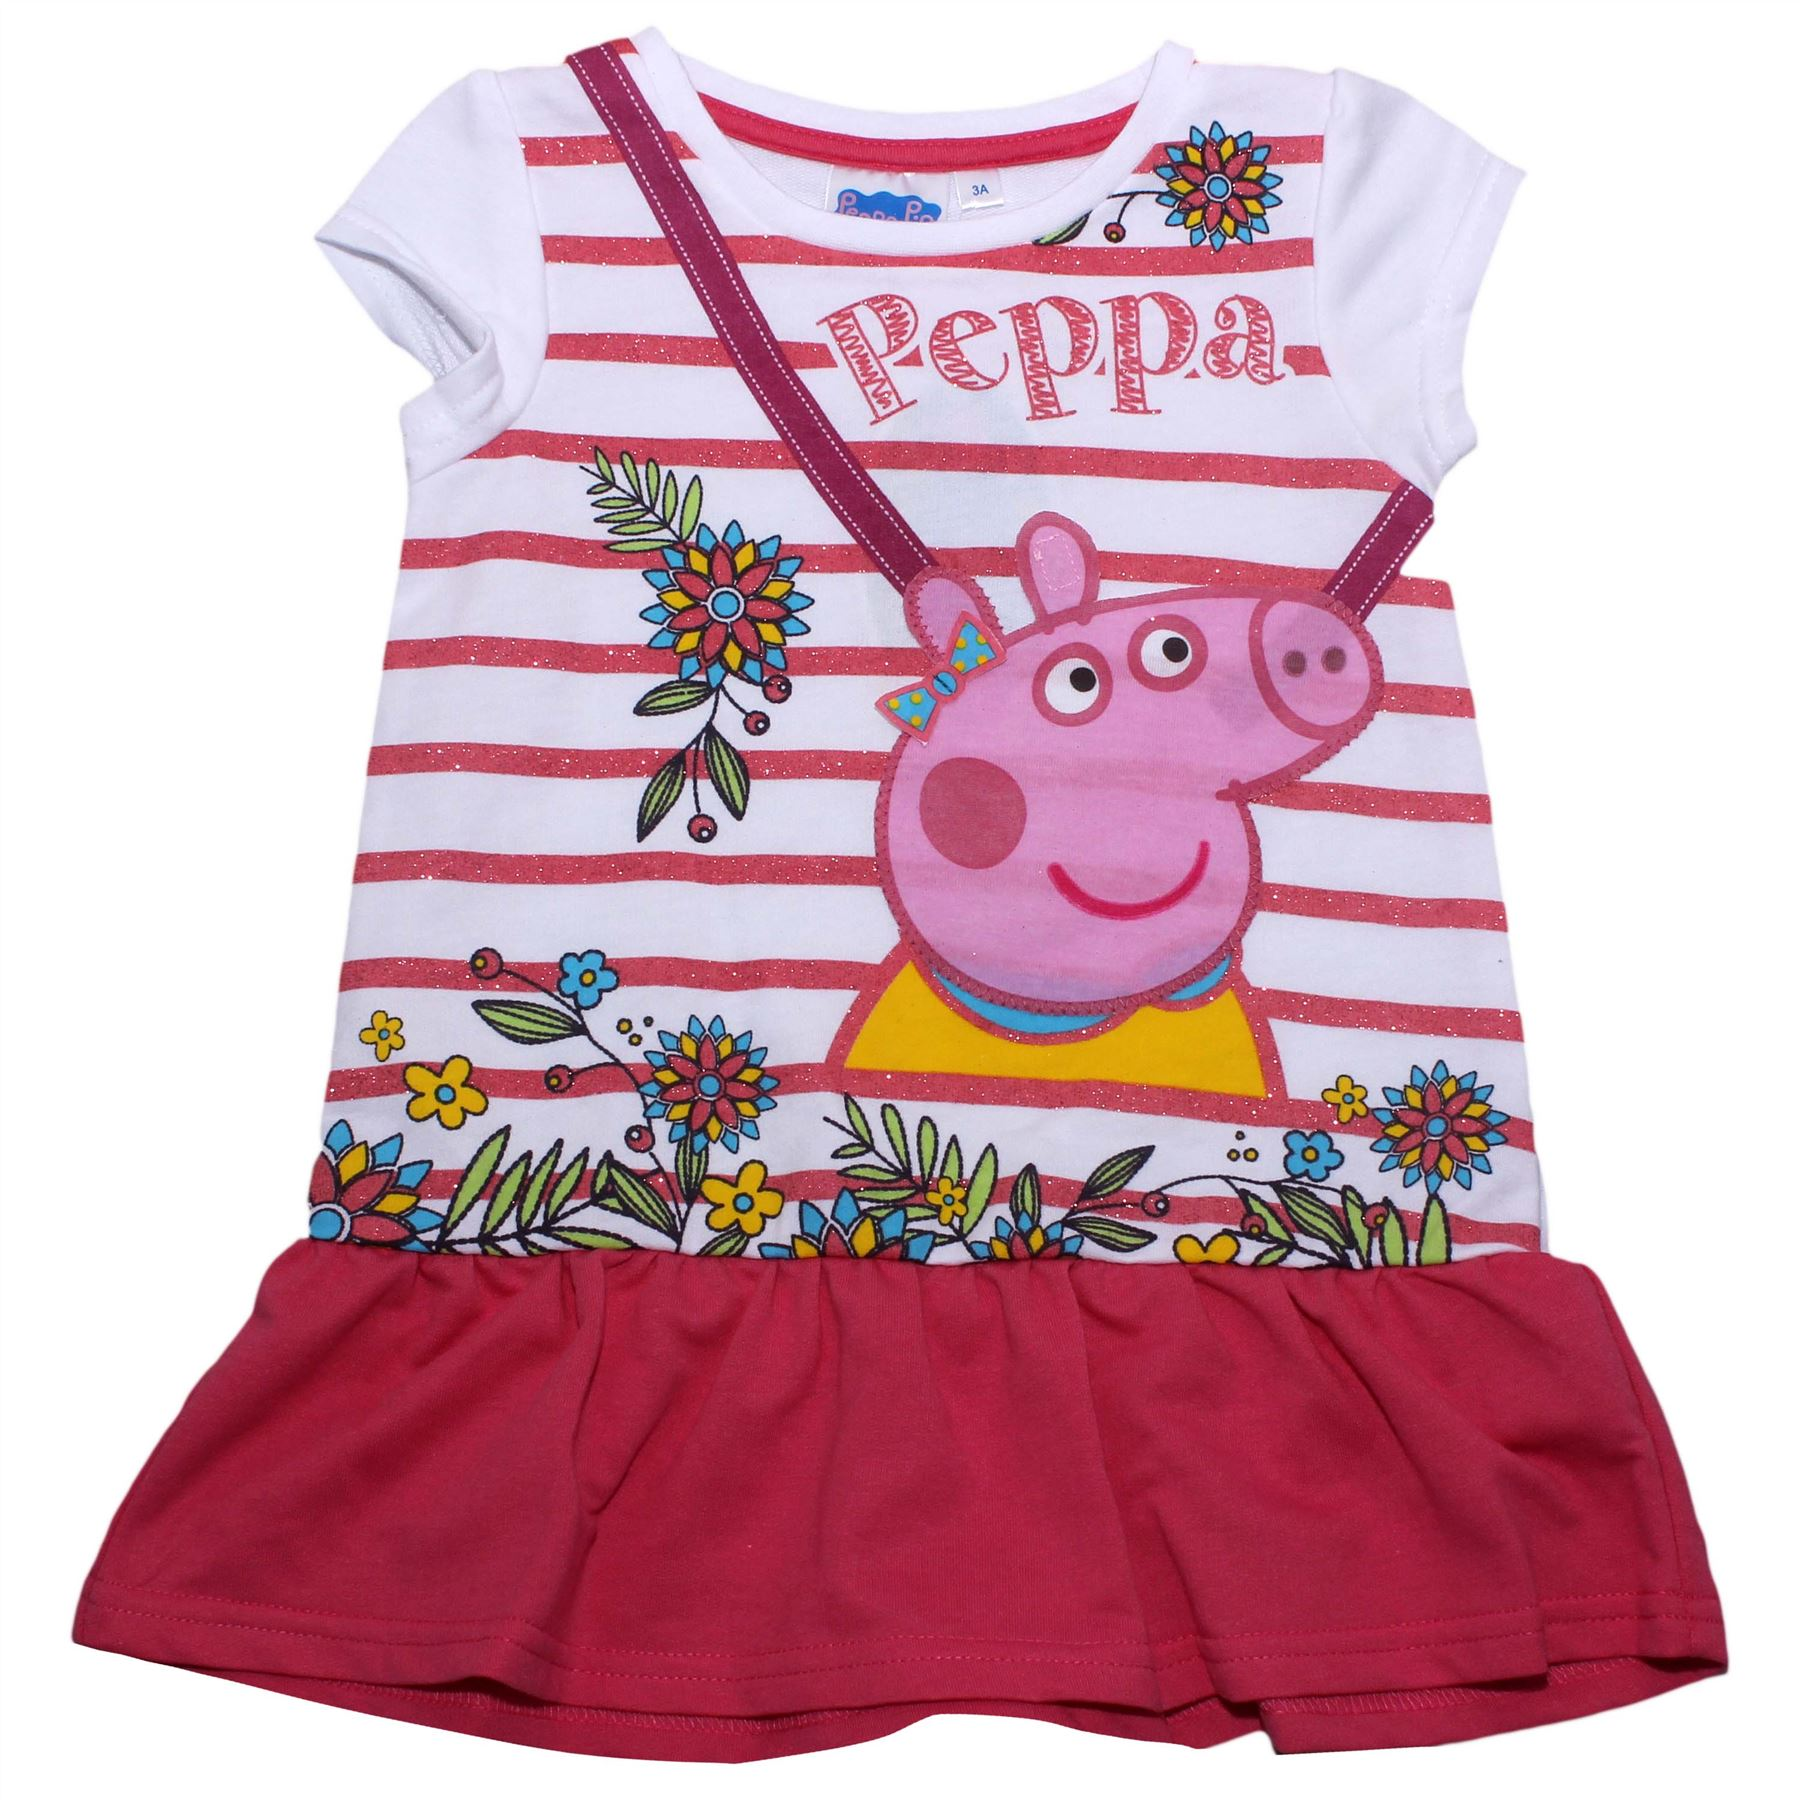 06496d90b68ce Details about Peppa Pig Girls Spring Flowers Childrens Dress - Spring  Summer Collection